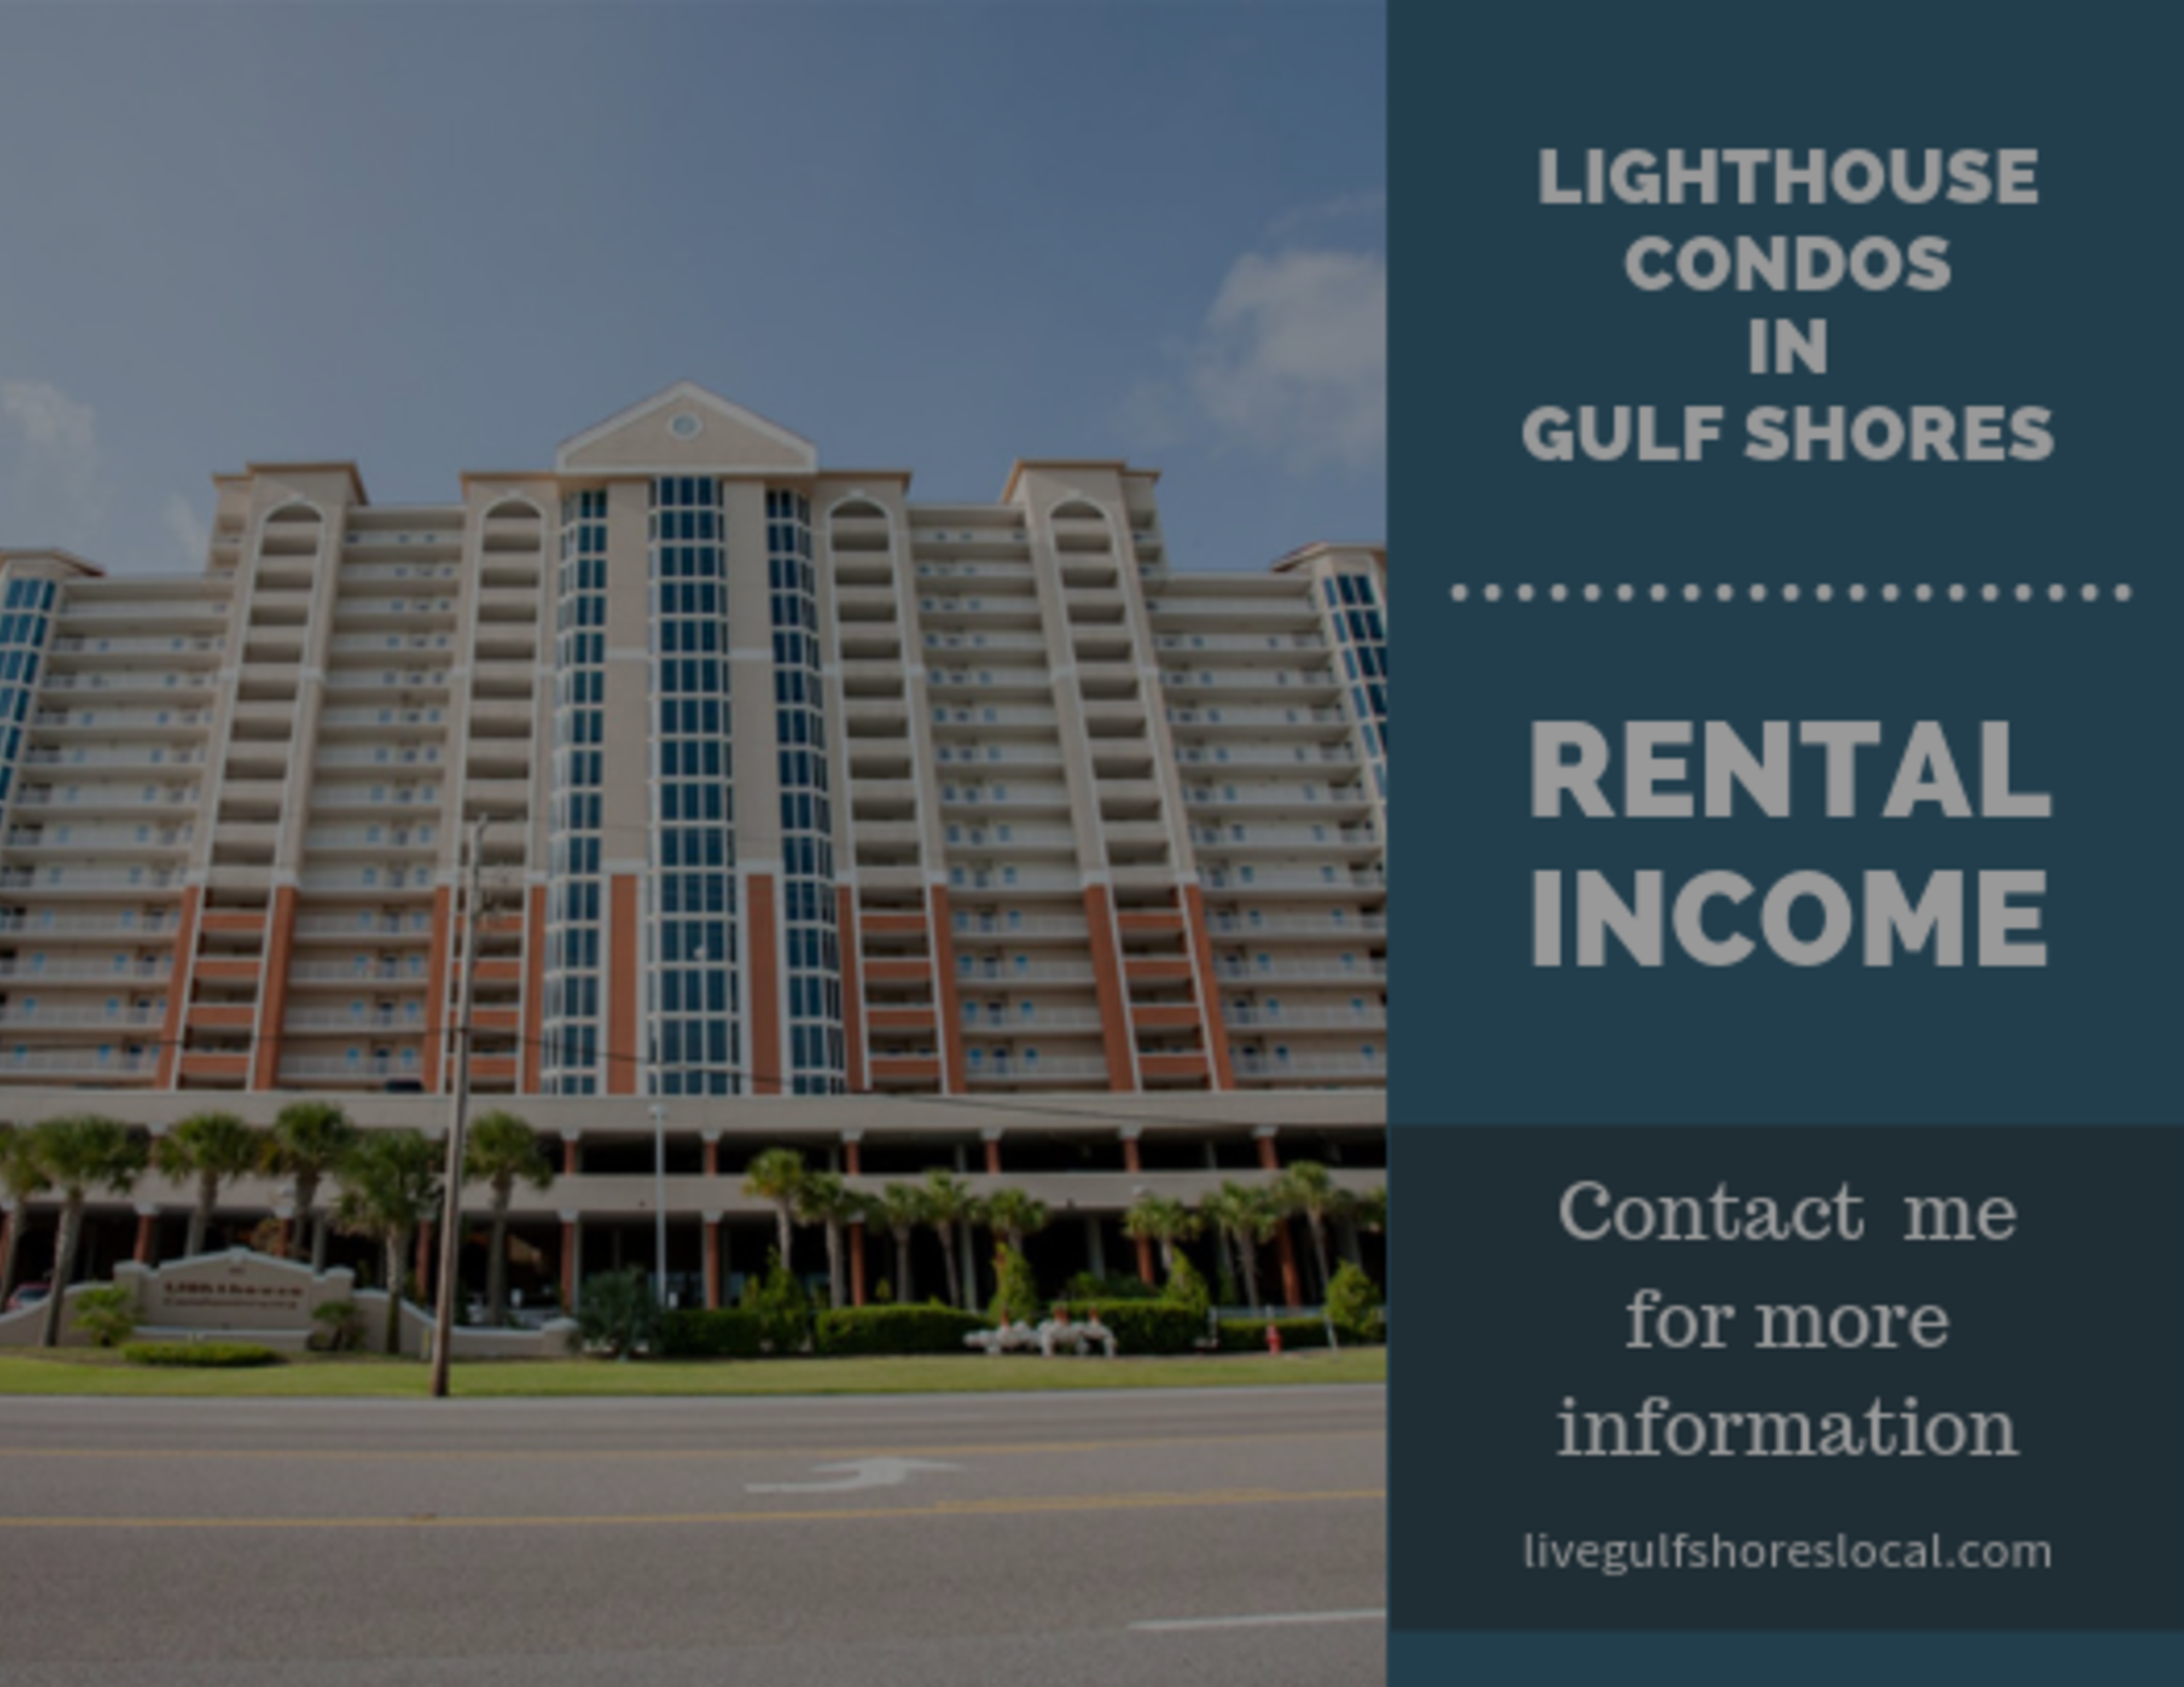 Rental Income for Lighthouse